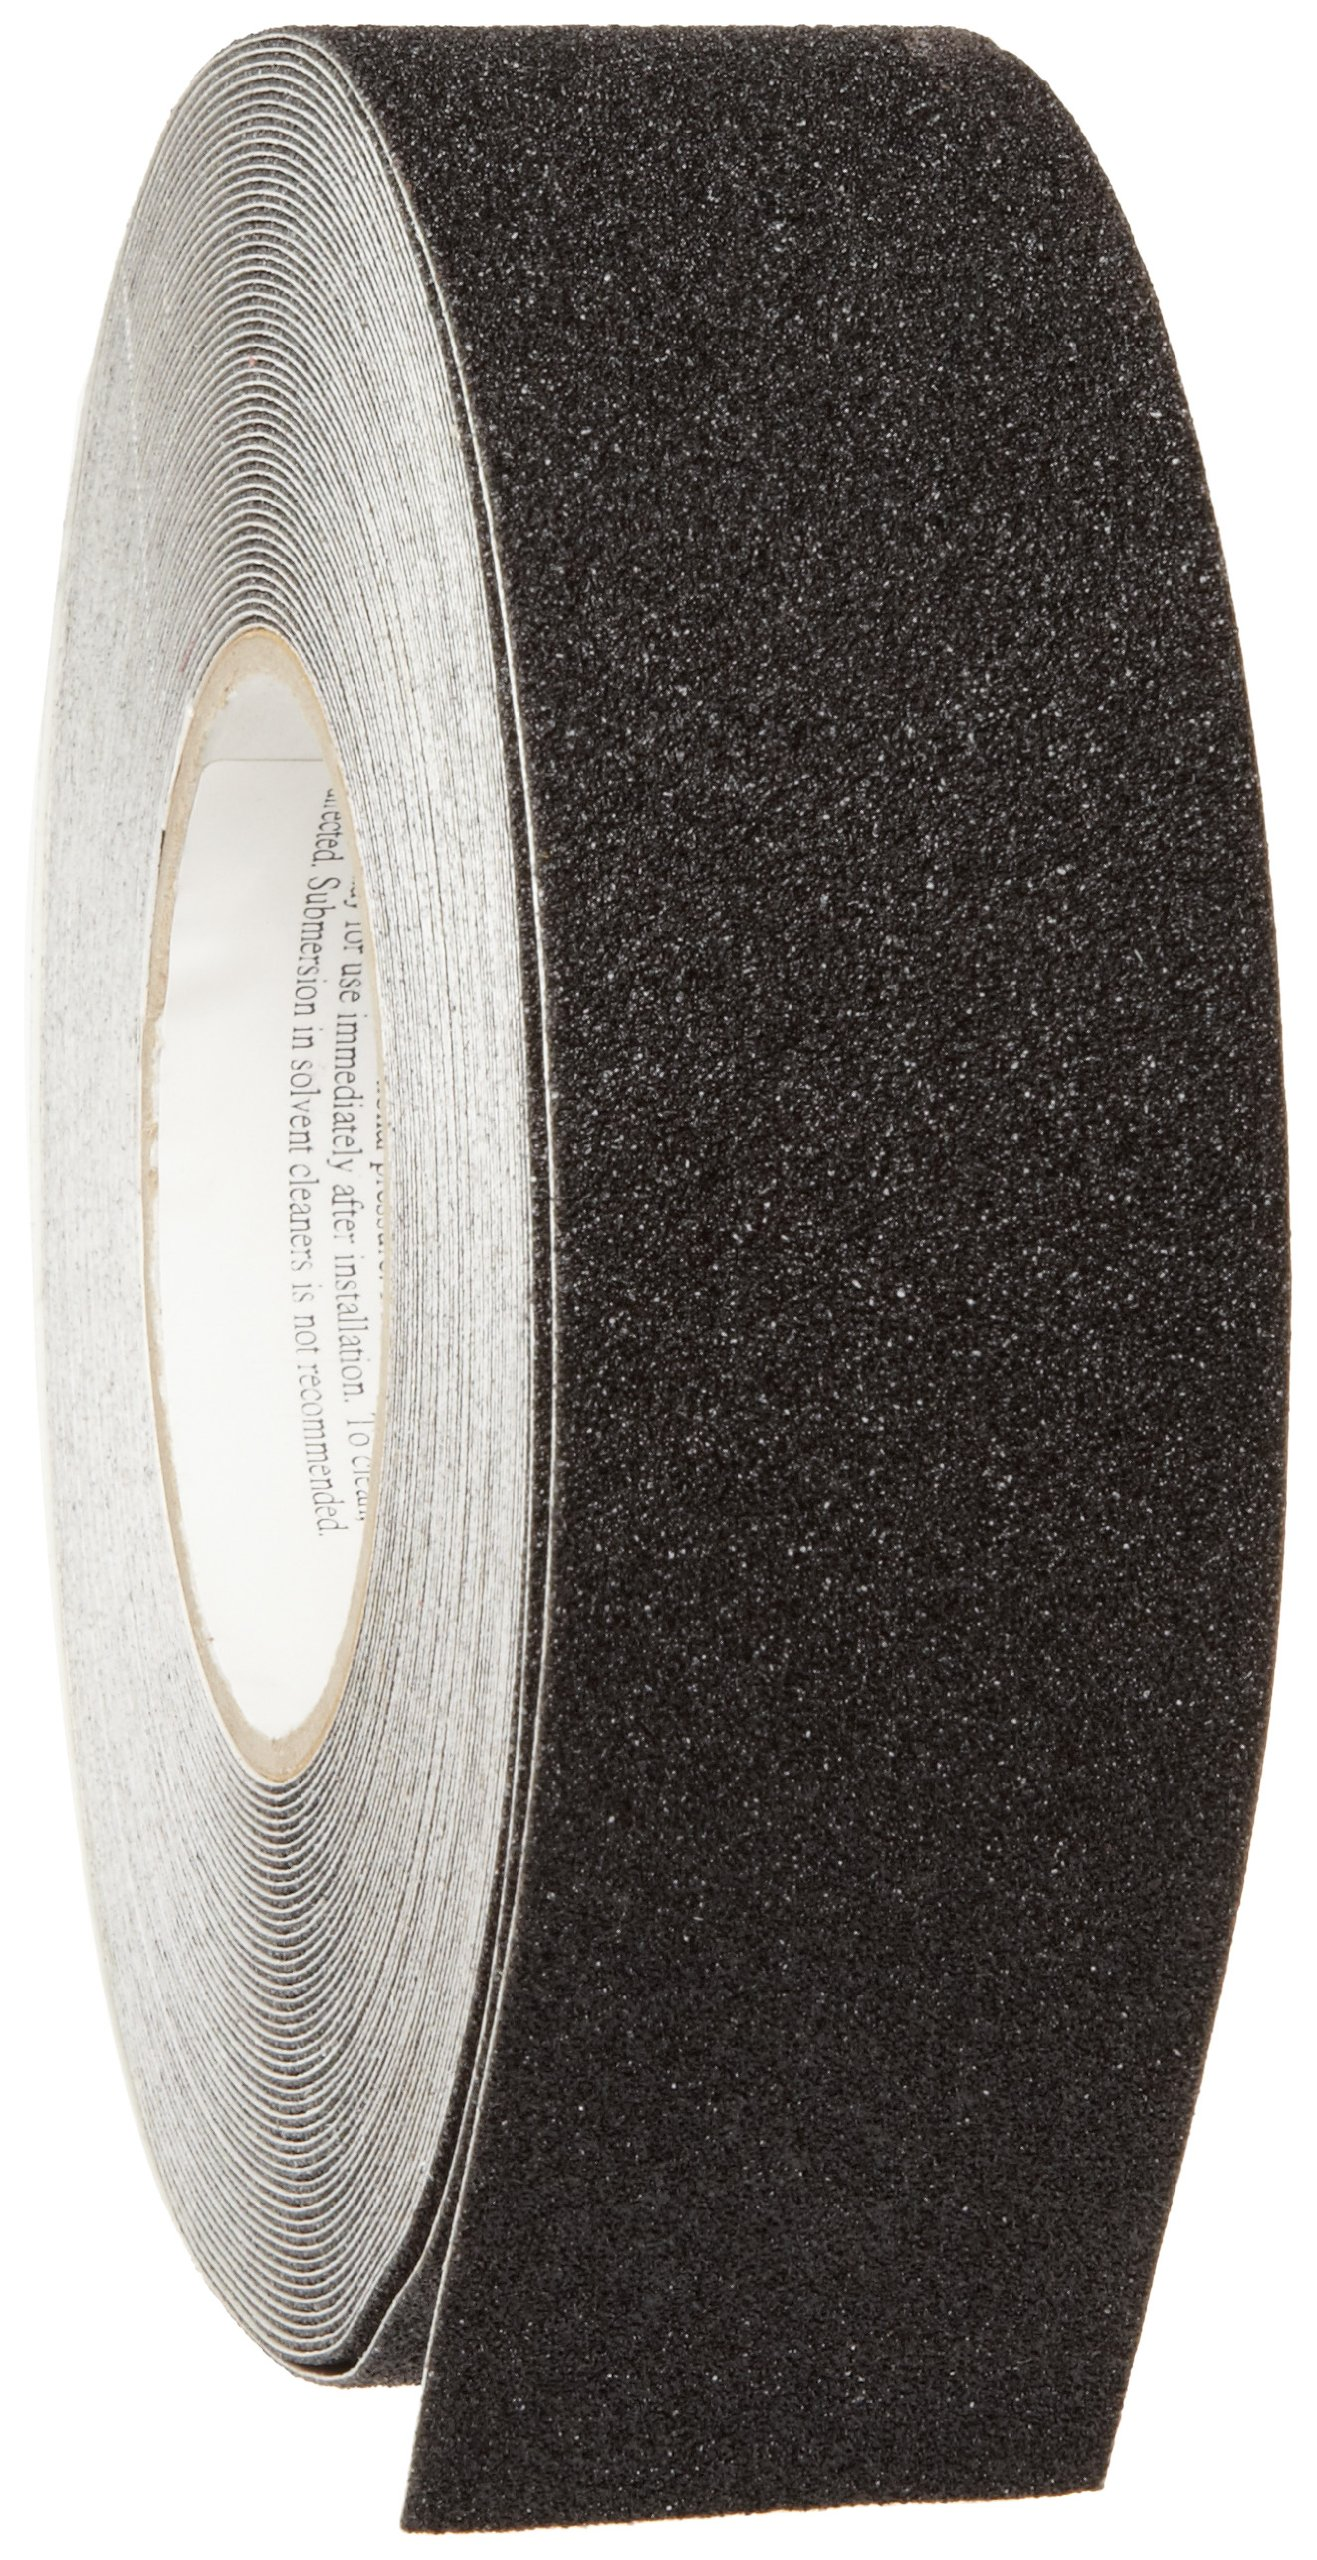 Brady 78190 60' Length, 2'' Width, B-916 Grit-Coated Polyester Tape, Black Color Anti-Skid Tape Roll Mounted